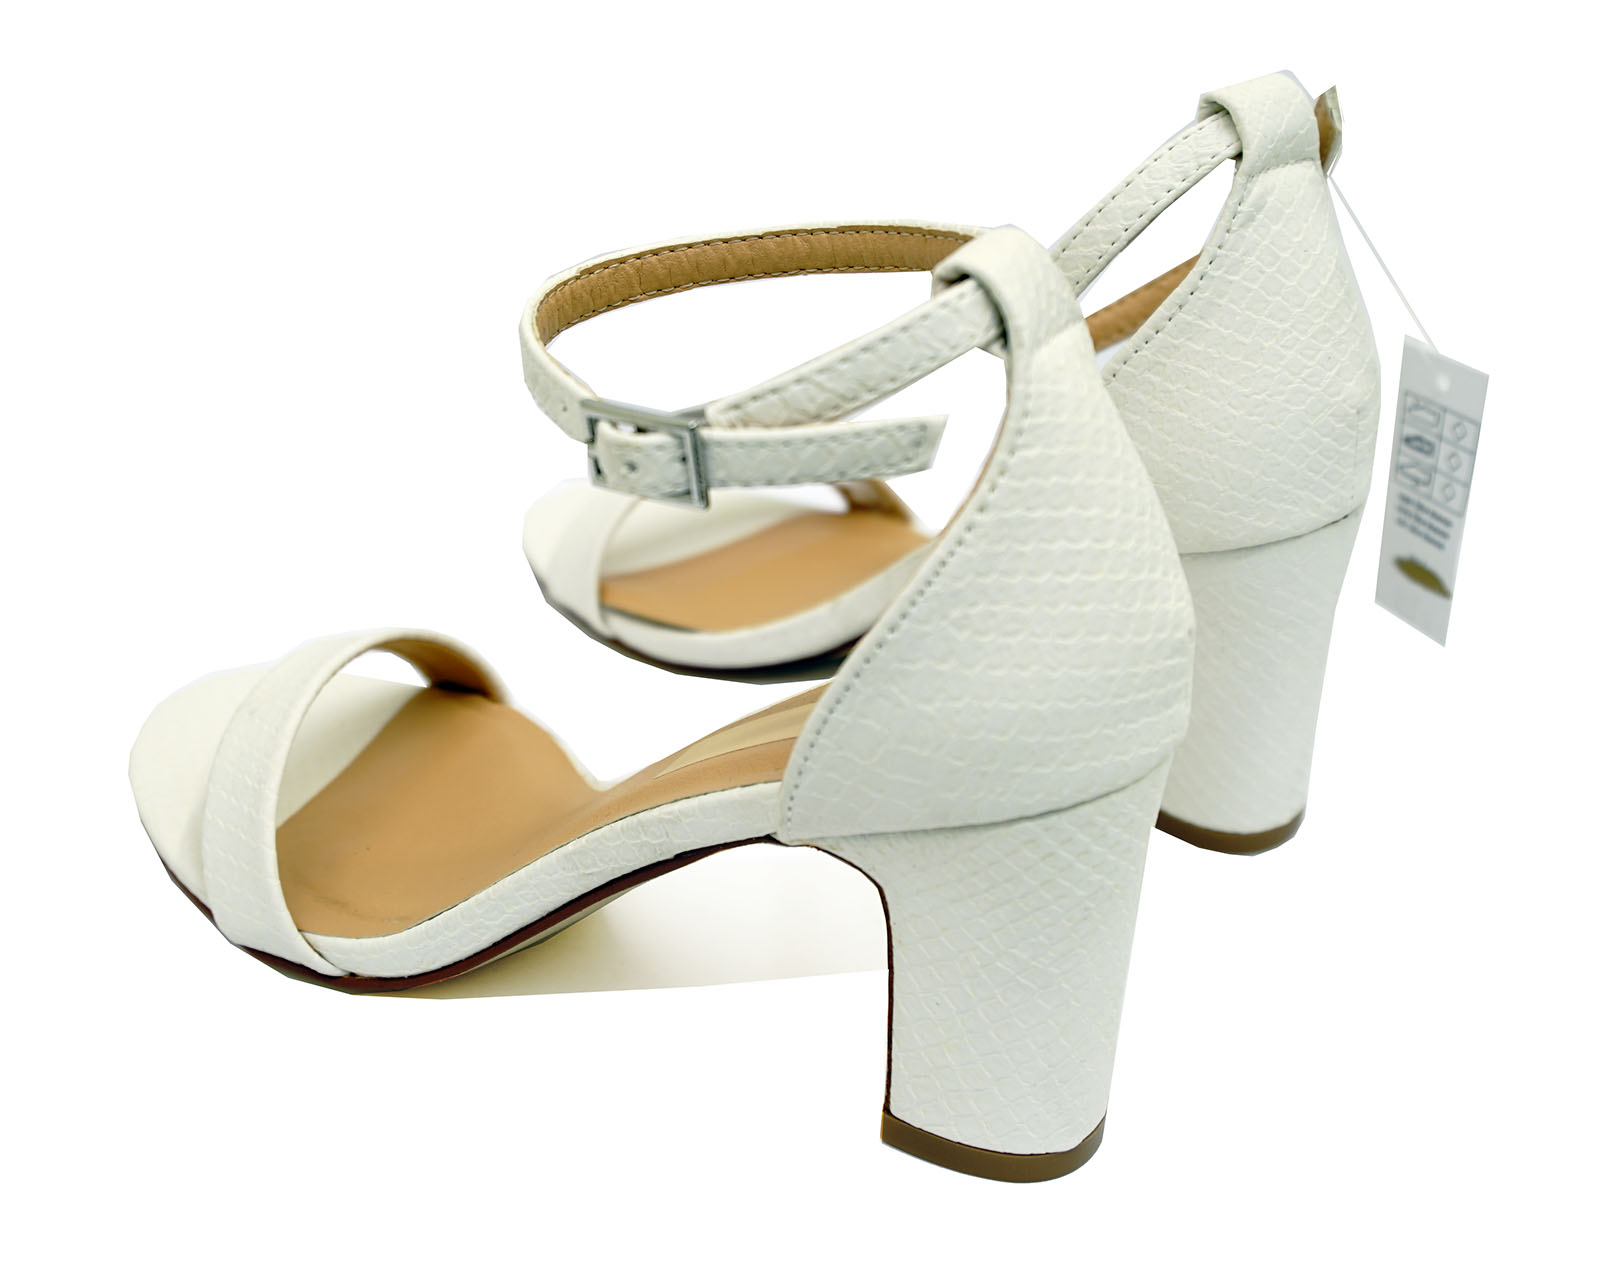 LADIES-WHITE-ANKLE-STRAP-BLOCK-HEEL-PEEPTOE-SANDALS-HOLIDAY-COMFY-SHOES-UK-3-8 thumbnail 28